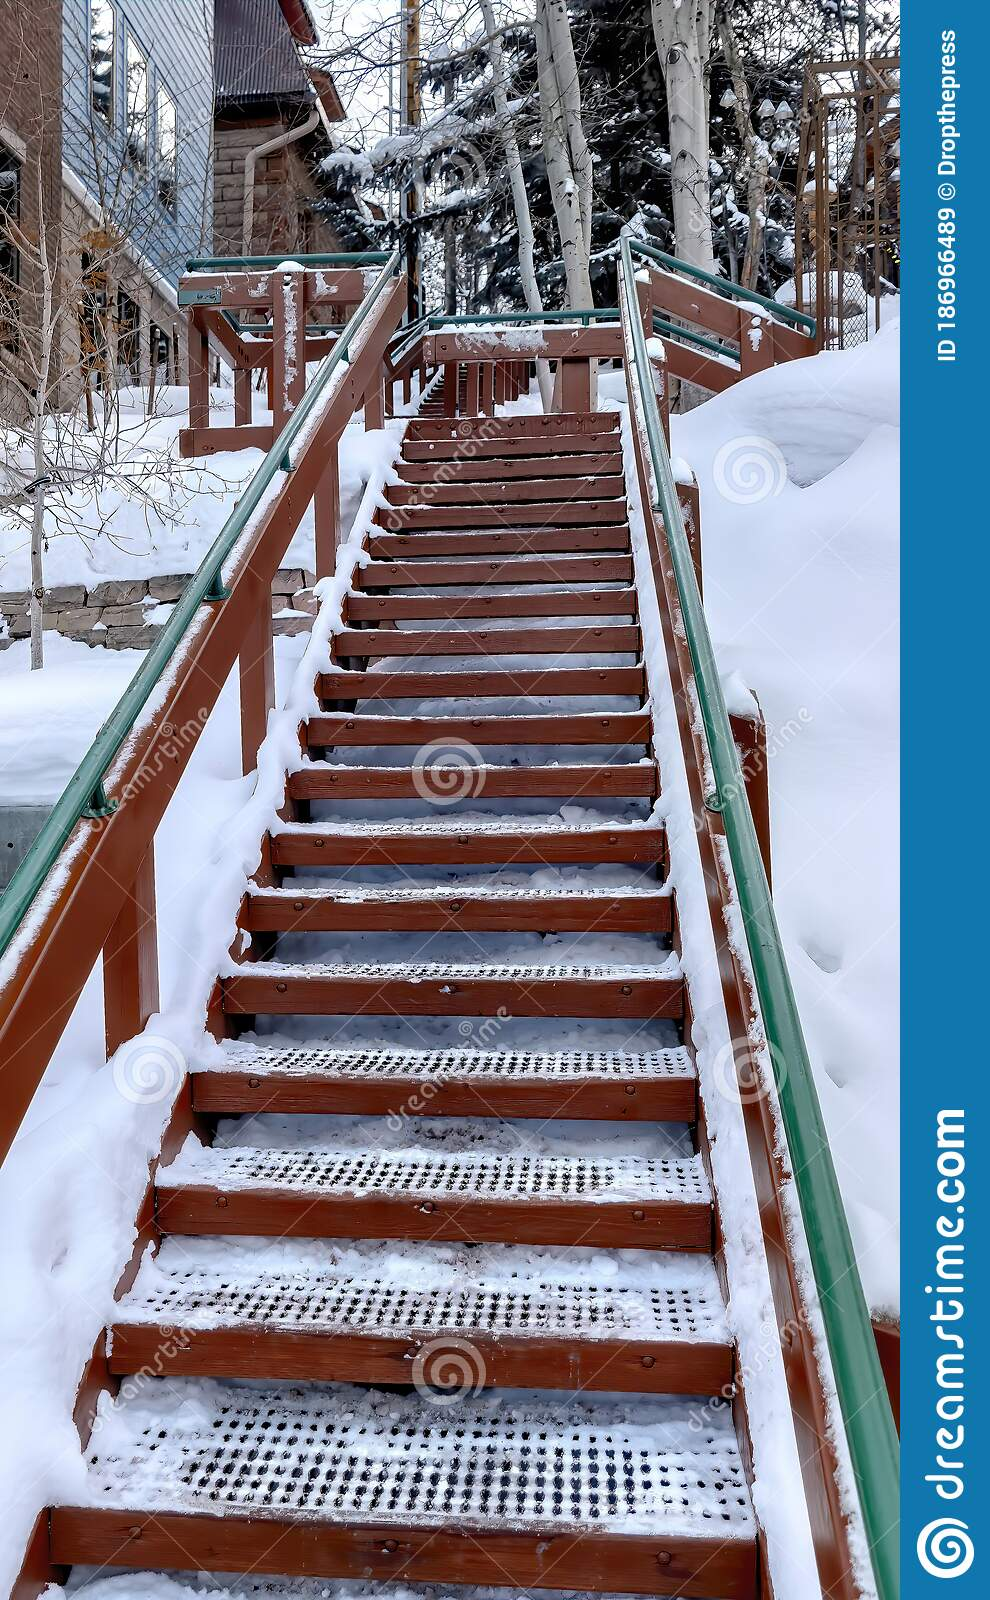 Image of: Vertical Frame Outdoor Stairs With Grate Metal Treads And Green Handrail On Snowy Winter Hill Stock Image Image Of Slope Exterior 186966489